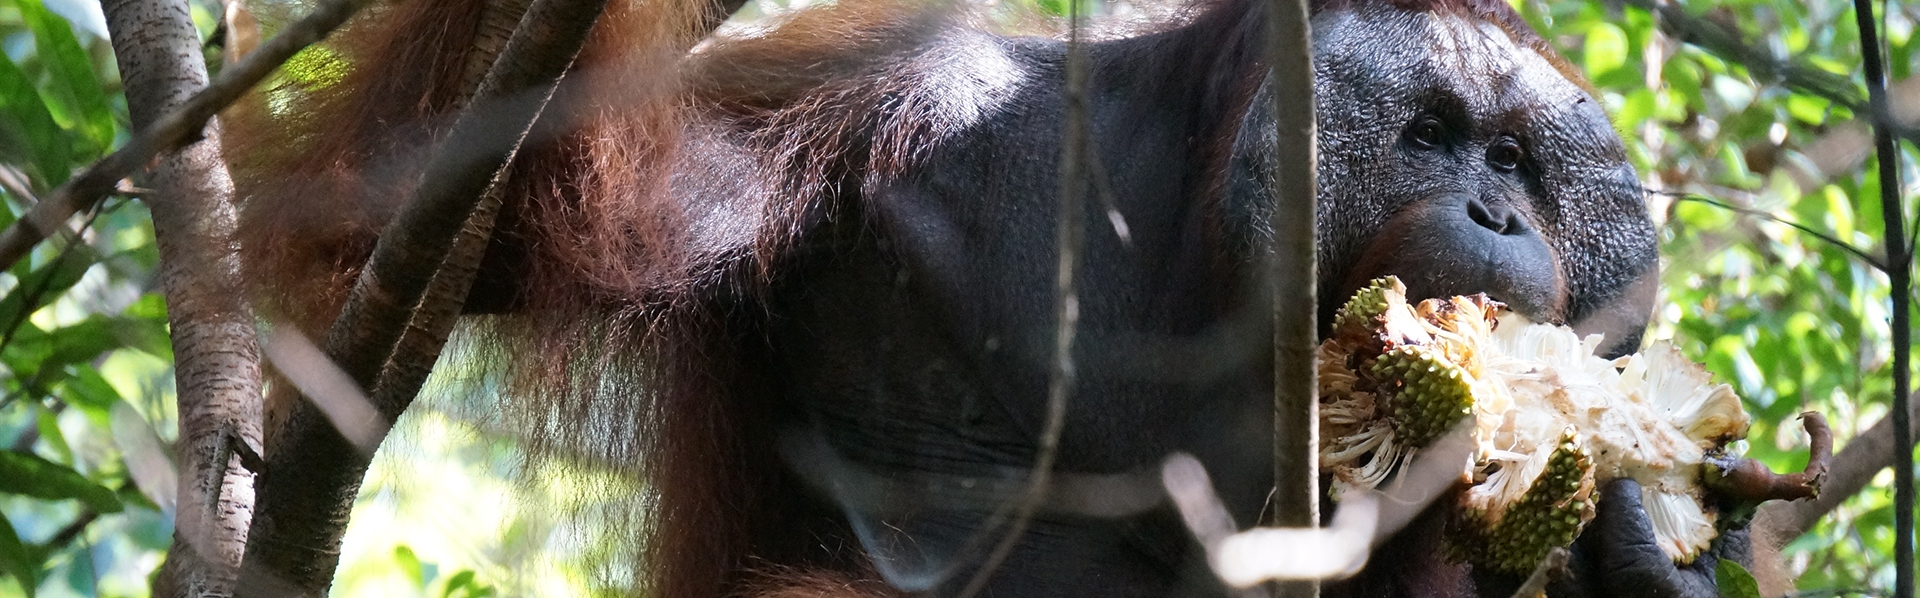 Rutgers Global - Human Origins High School, orangutan in Indonesia sitting in tree eating fruit